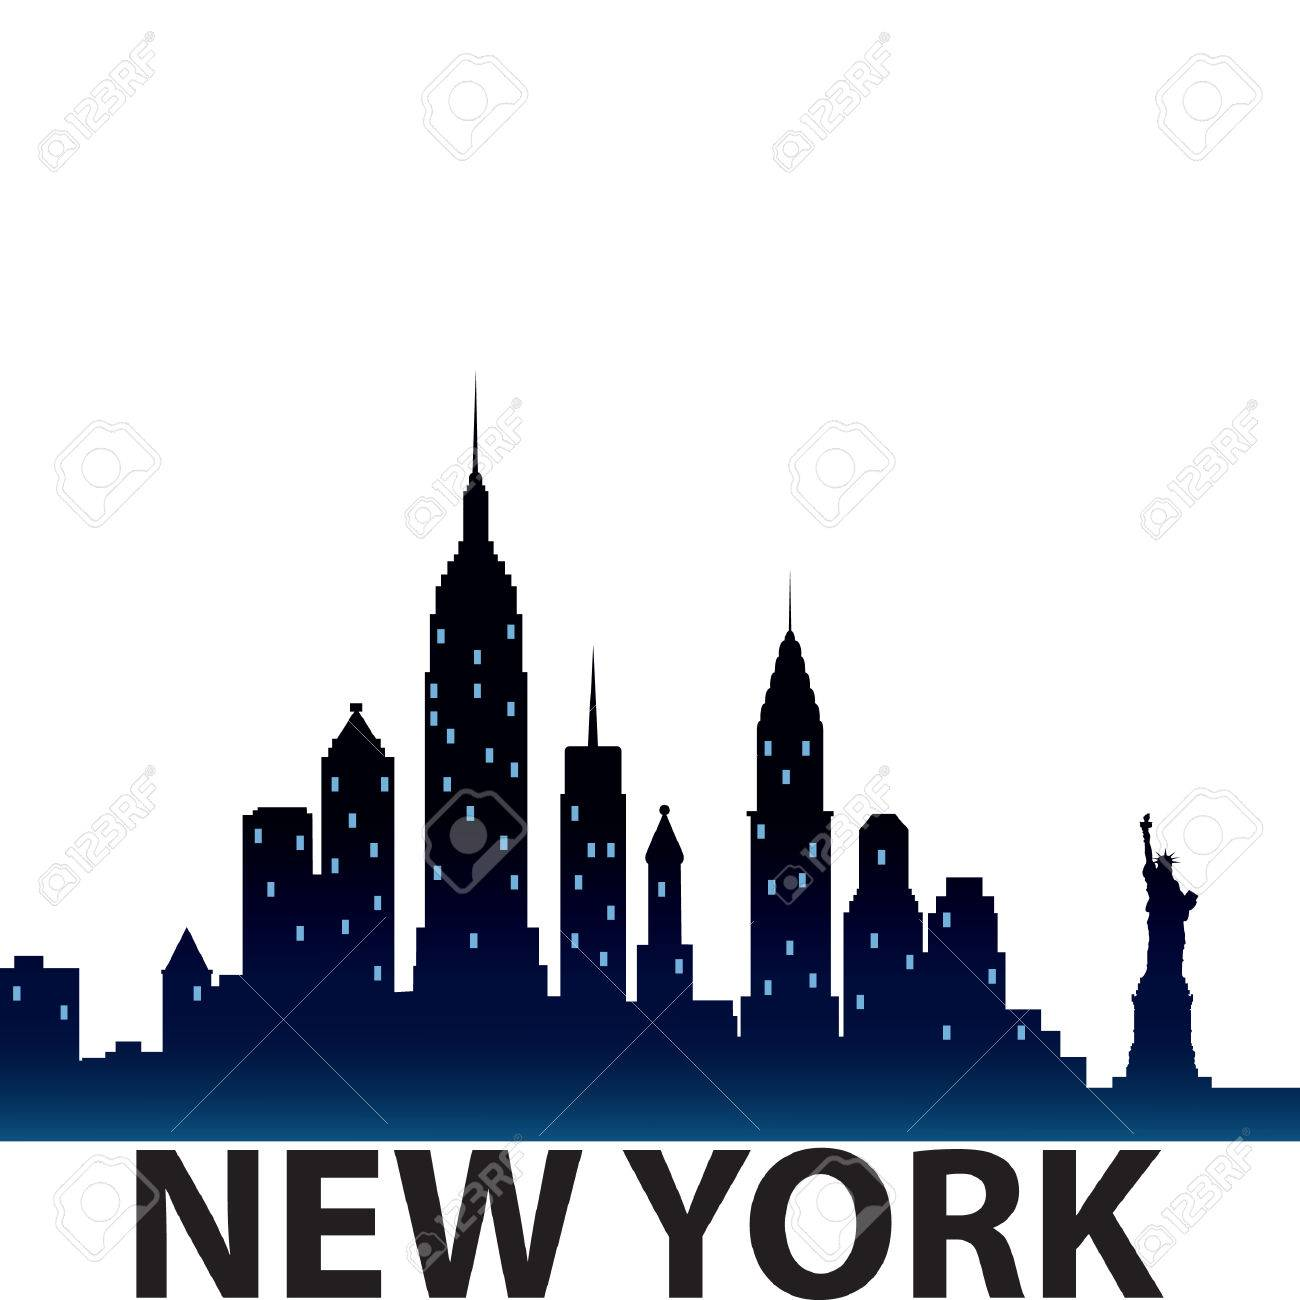 new york city skyline silhouette.